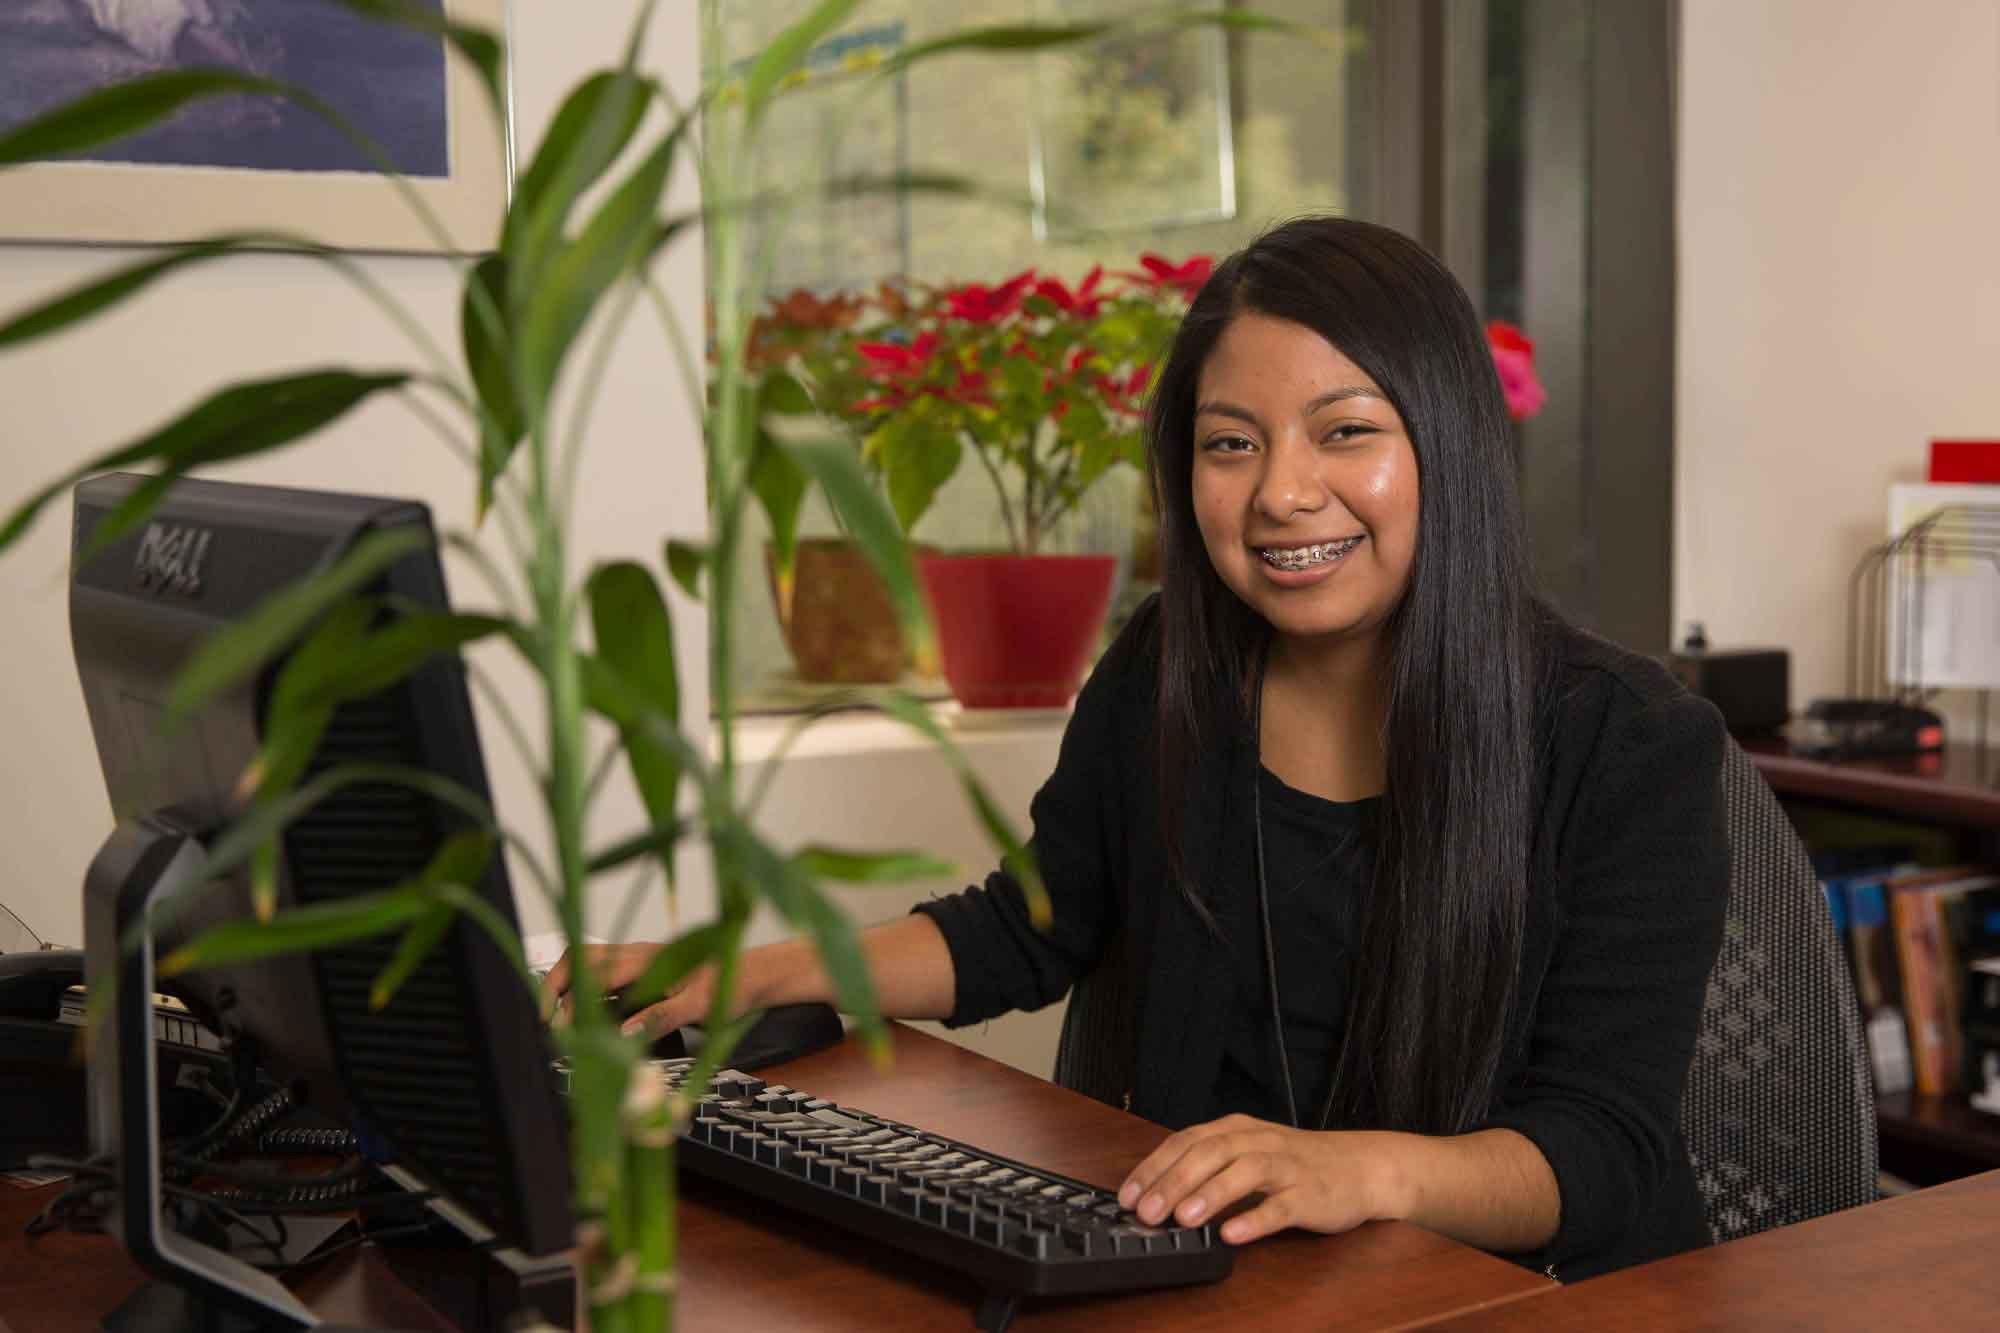 A woman works in an office with a pot of flowers in the background